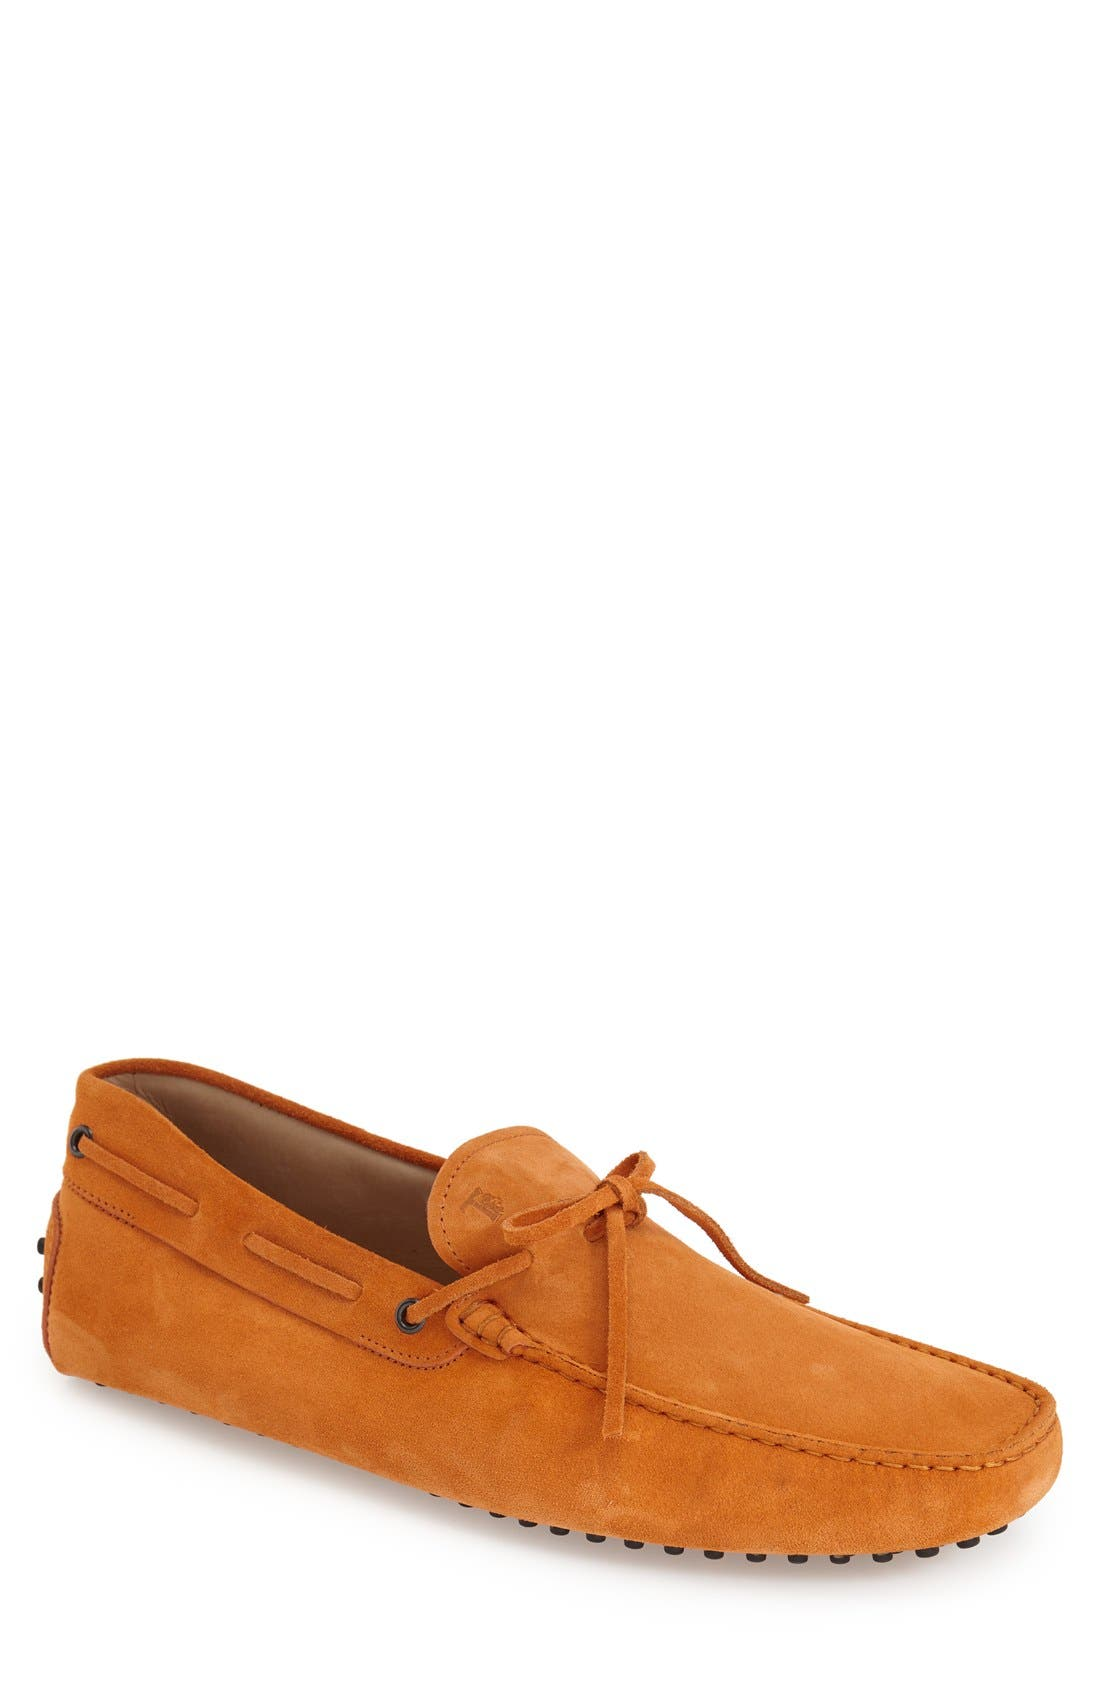 Gommini Tie Front Driving Moccasin,                             Main thumbnail 23, color,